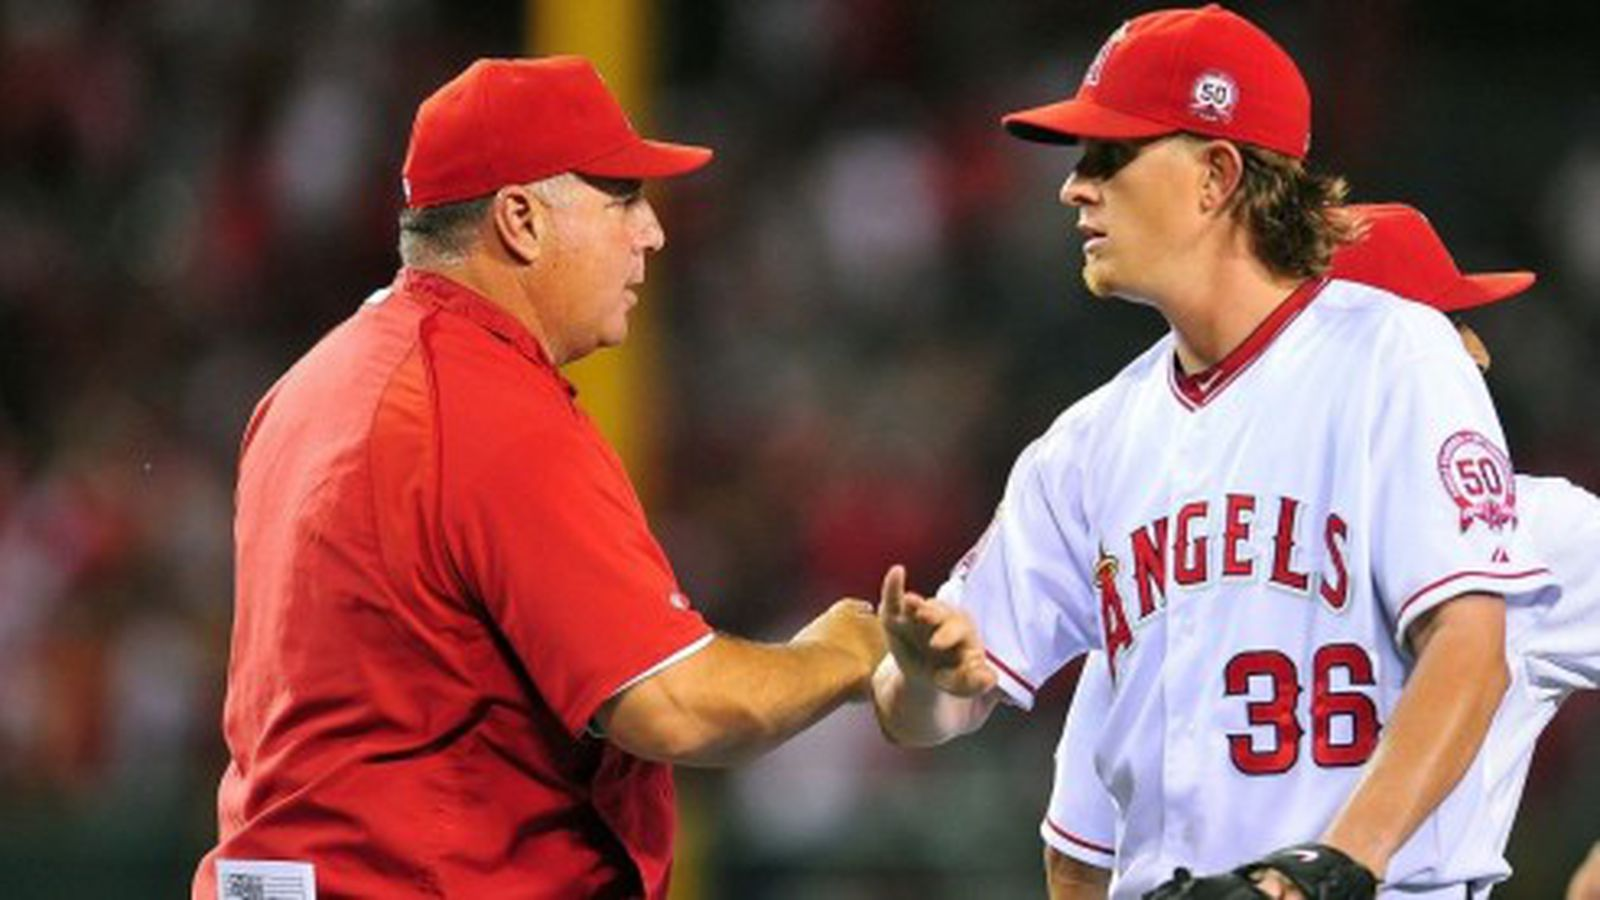 West_jered_weaver_mike_sciosciavresize_high_1821479401.0